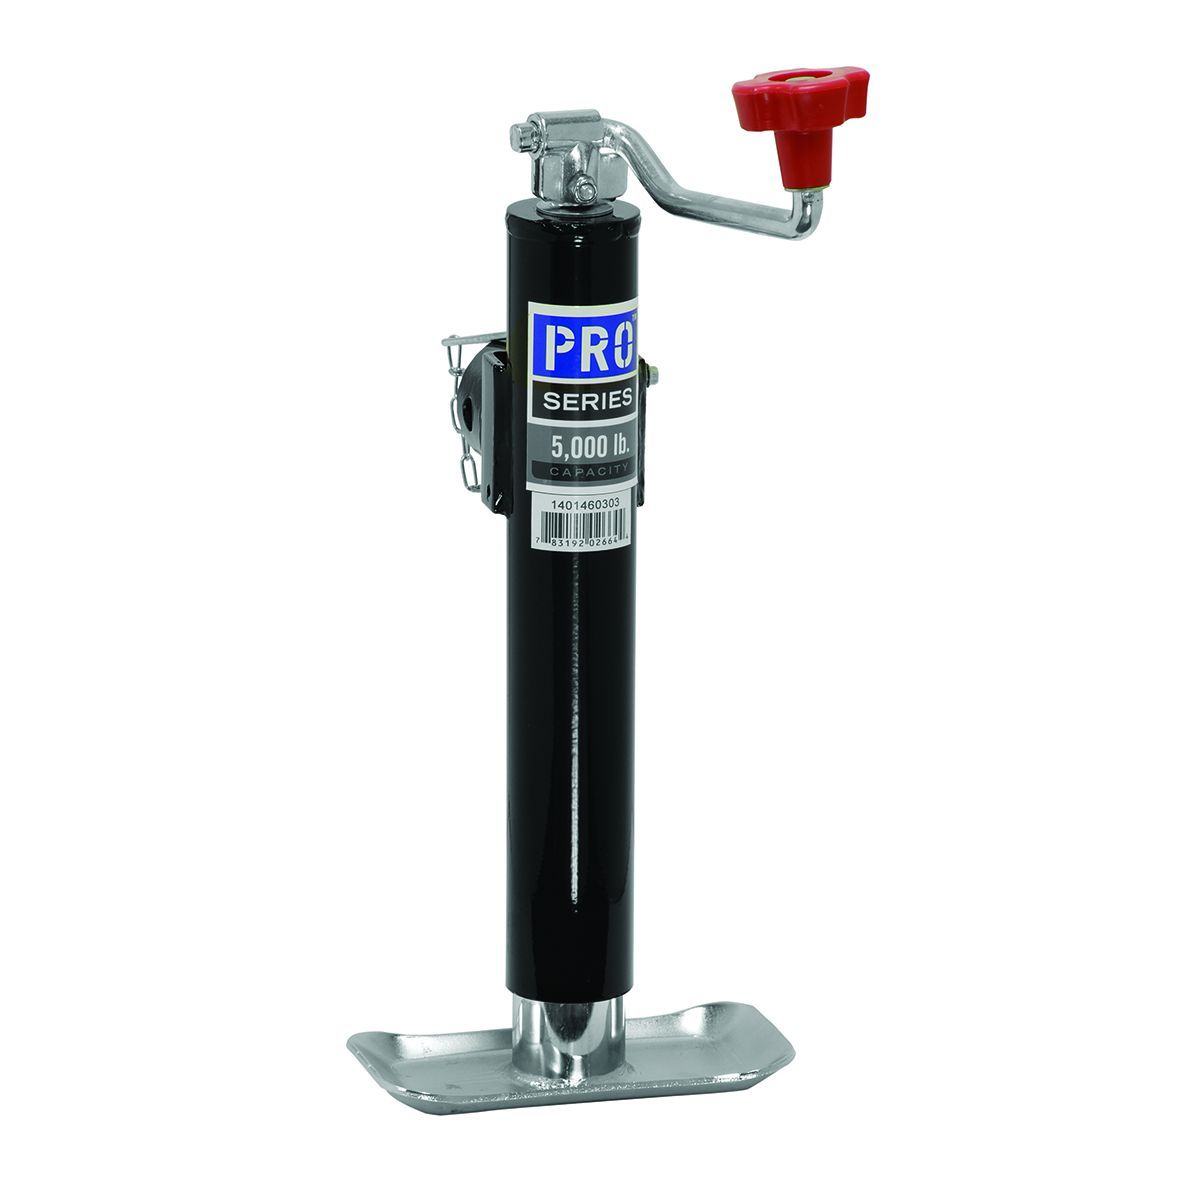 1401460303 Pro Series Hitch Trailer Tongue Jack Manual Trailer Jack -